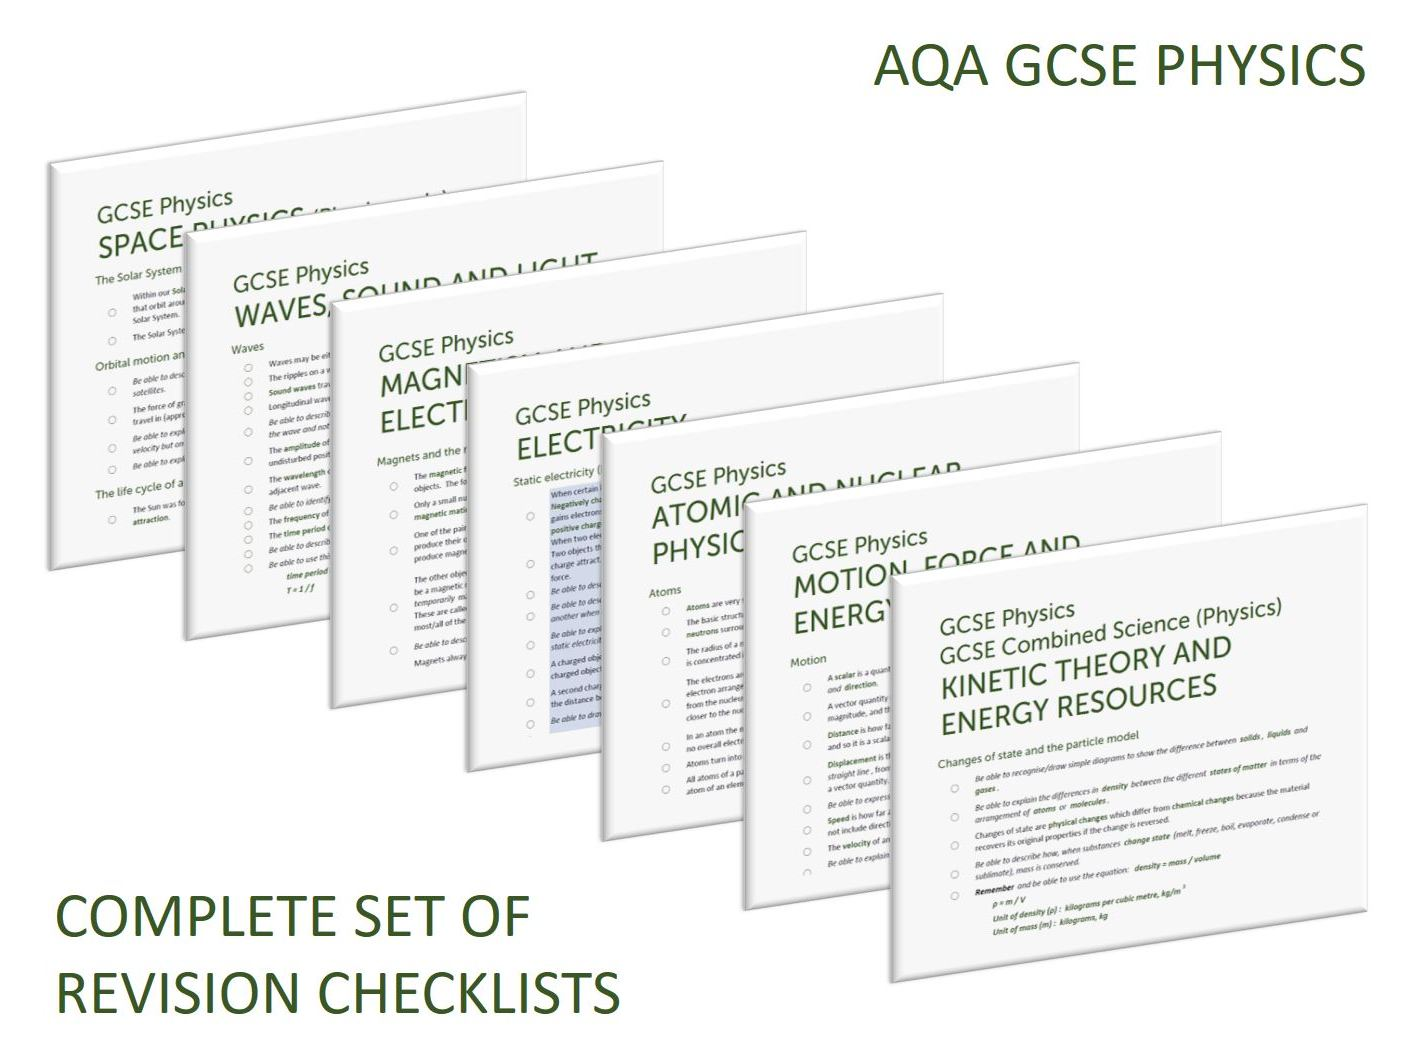 Complete set of Physics revision checklists for GCSE Physics